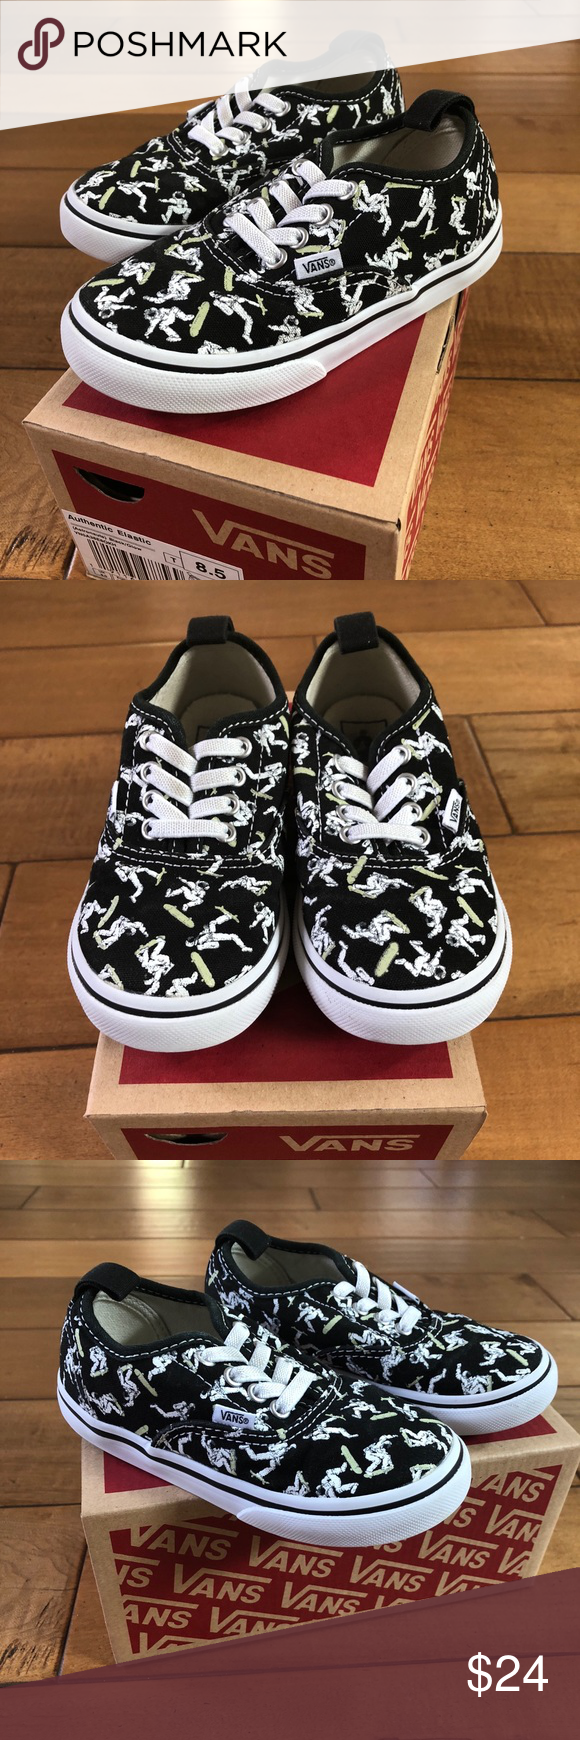 b51f783806 Vans Glow Astronauts Slip On Shoes Toddler Sz 8.5 Vans Awesome Glow in the  Dark Authentic Elastic Slip On style shoes! Astronauts on skateboards glow  in the ...